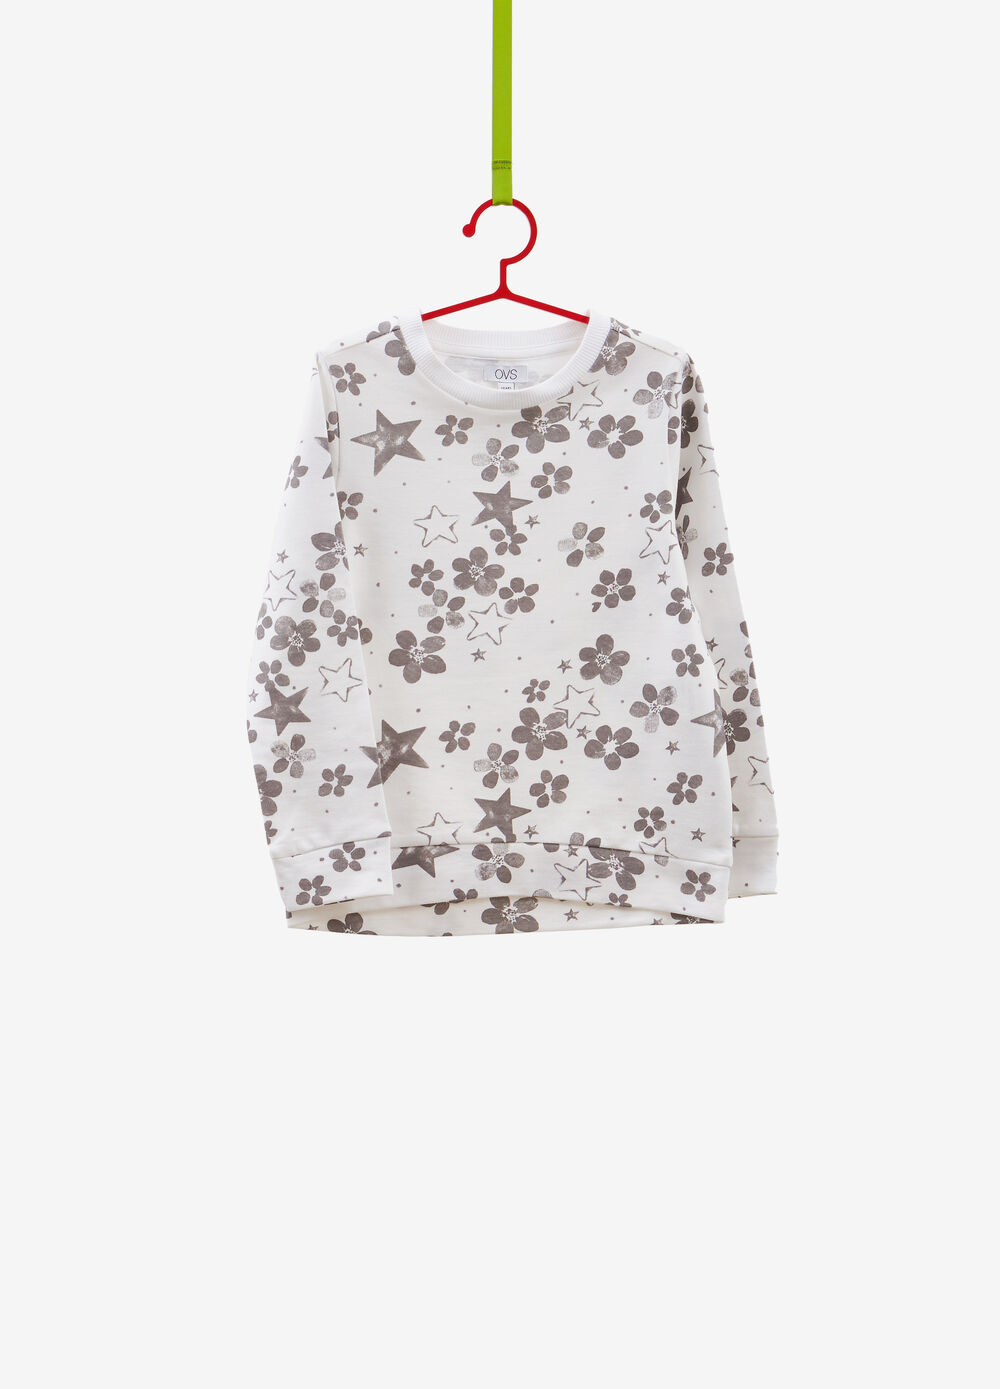 Floral sweatshirt in 100% cotton with stars